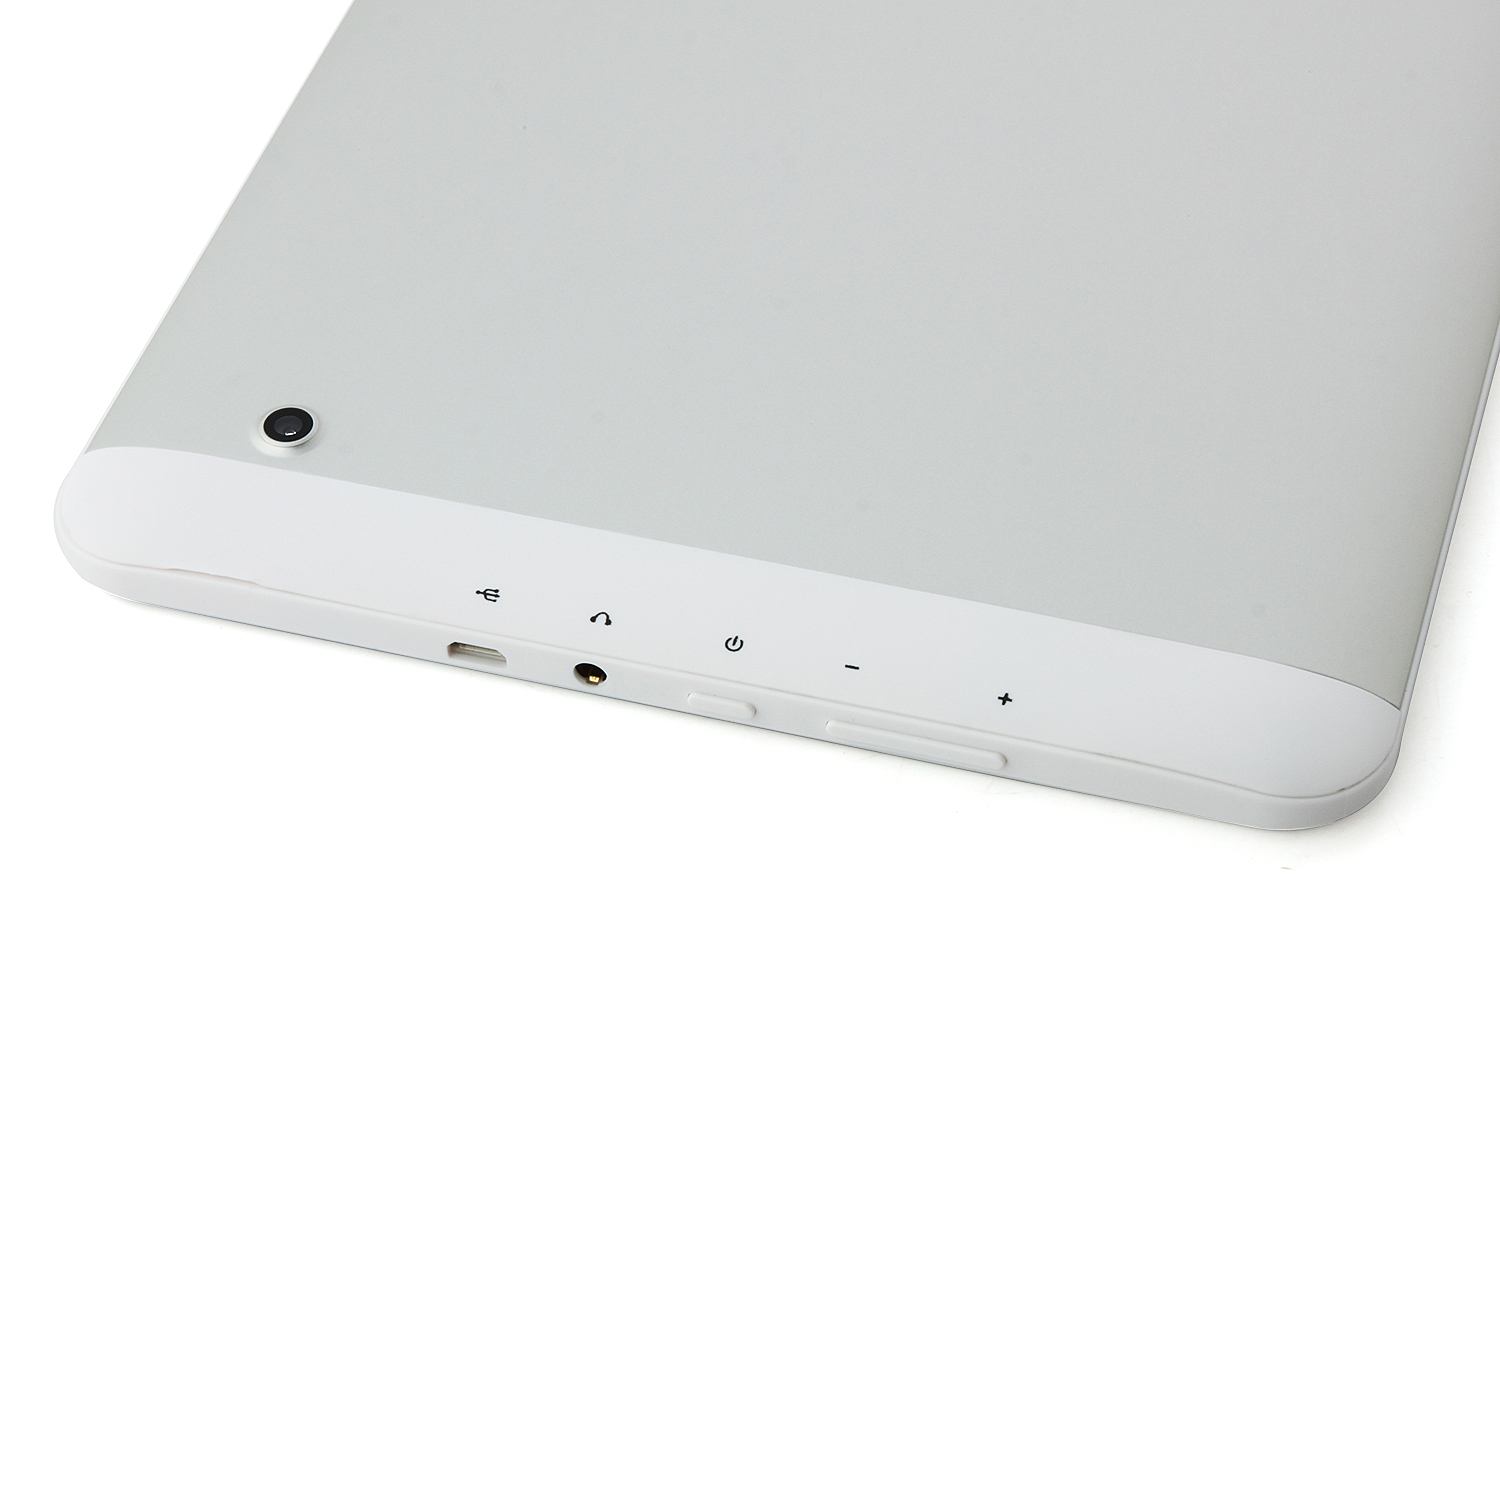 V106 3G Tablet PC MTK8382 Quad Core Android 4.4 10.1 Inch IPS  1GB 8GB White&Silver